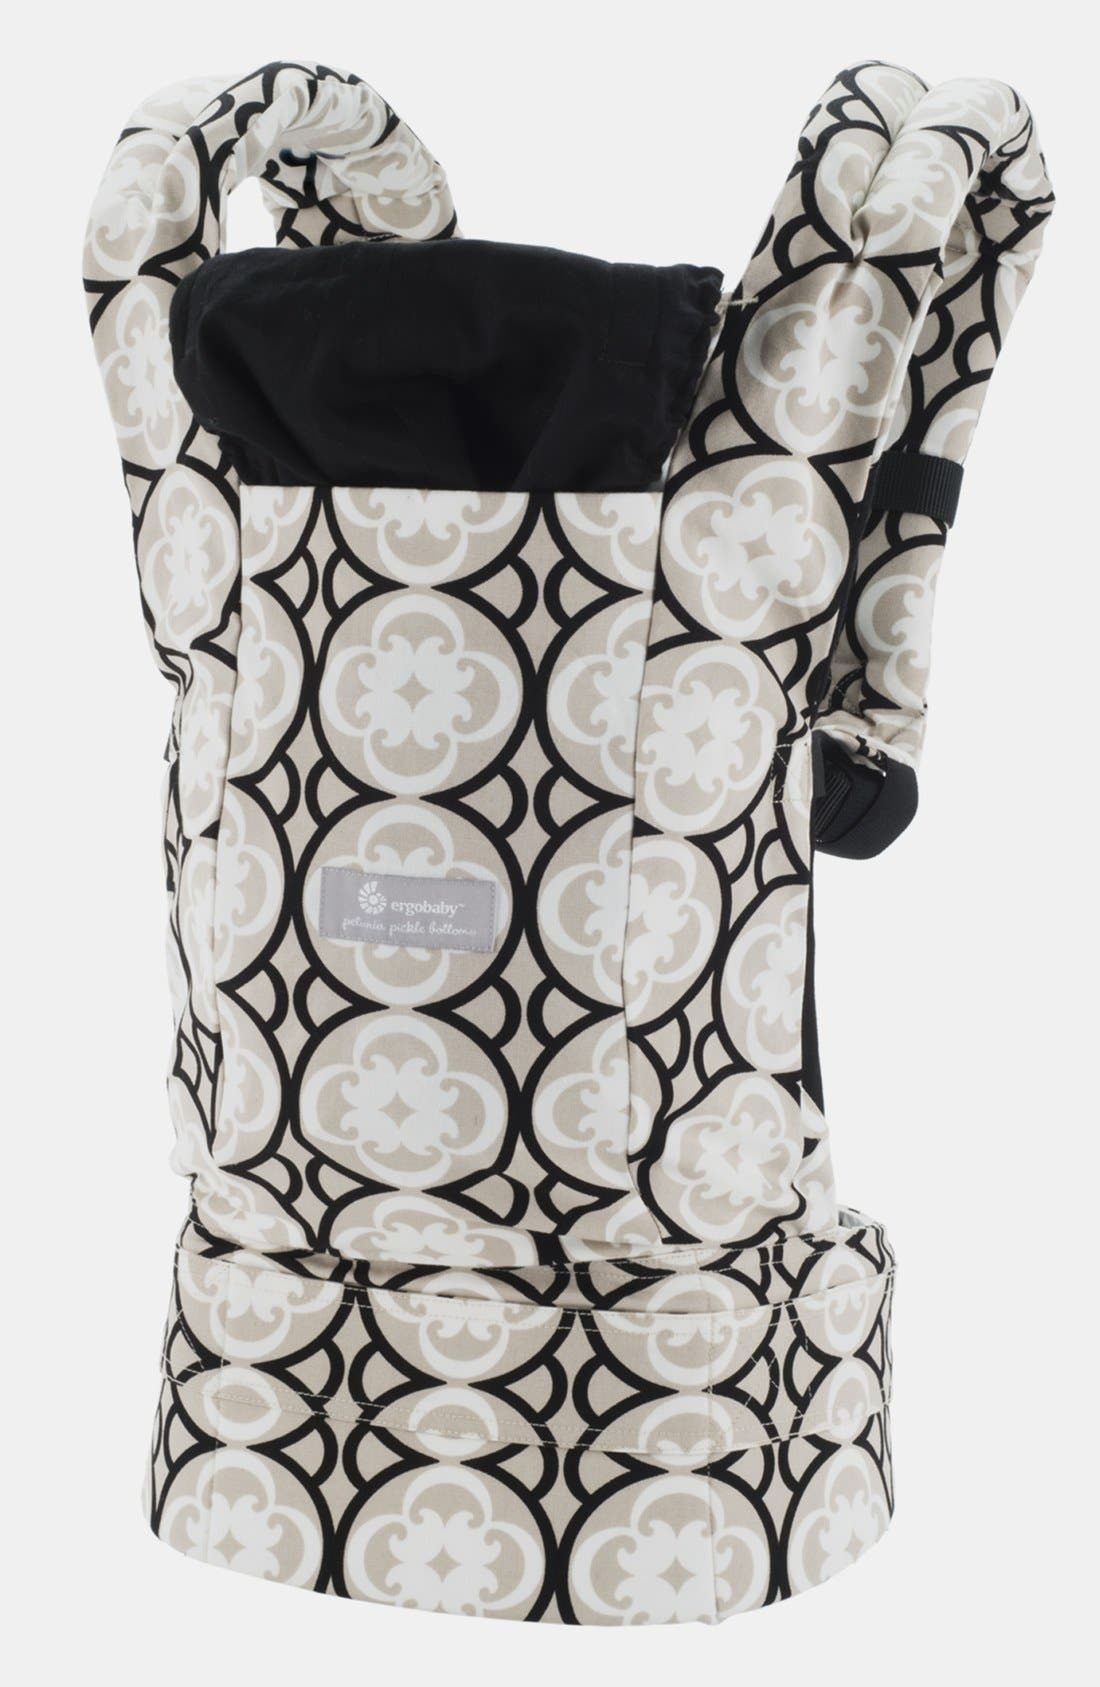 Main Image - ERGObaby Baby Carrier with Petunia Pickle Bottom Print (Nordstrom Exclusive)